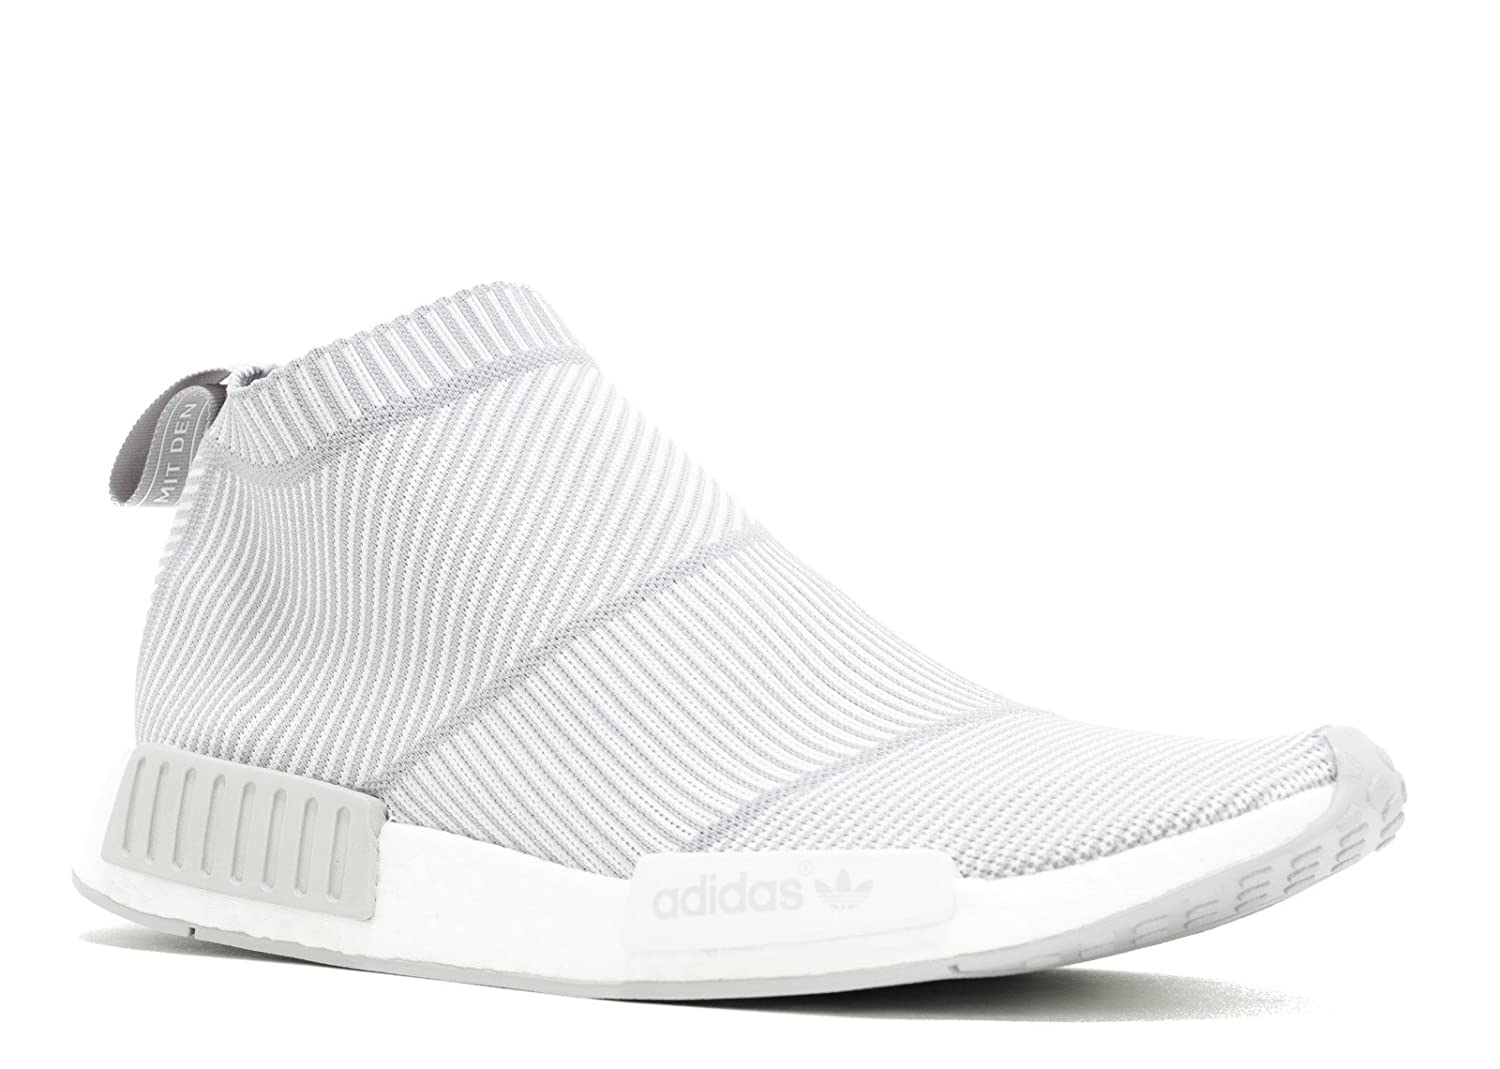 884698826 Adidas NMD City Sock CS1 PK Primeknit - Grey White Trainer  Amazon.co.uk   Shoes   Bags